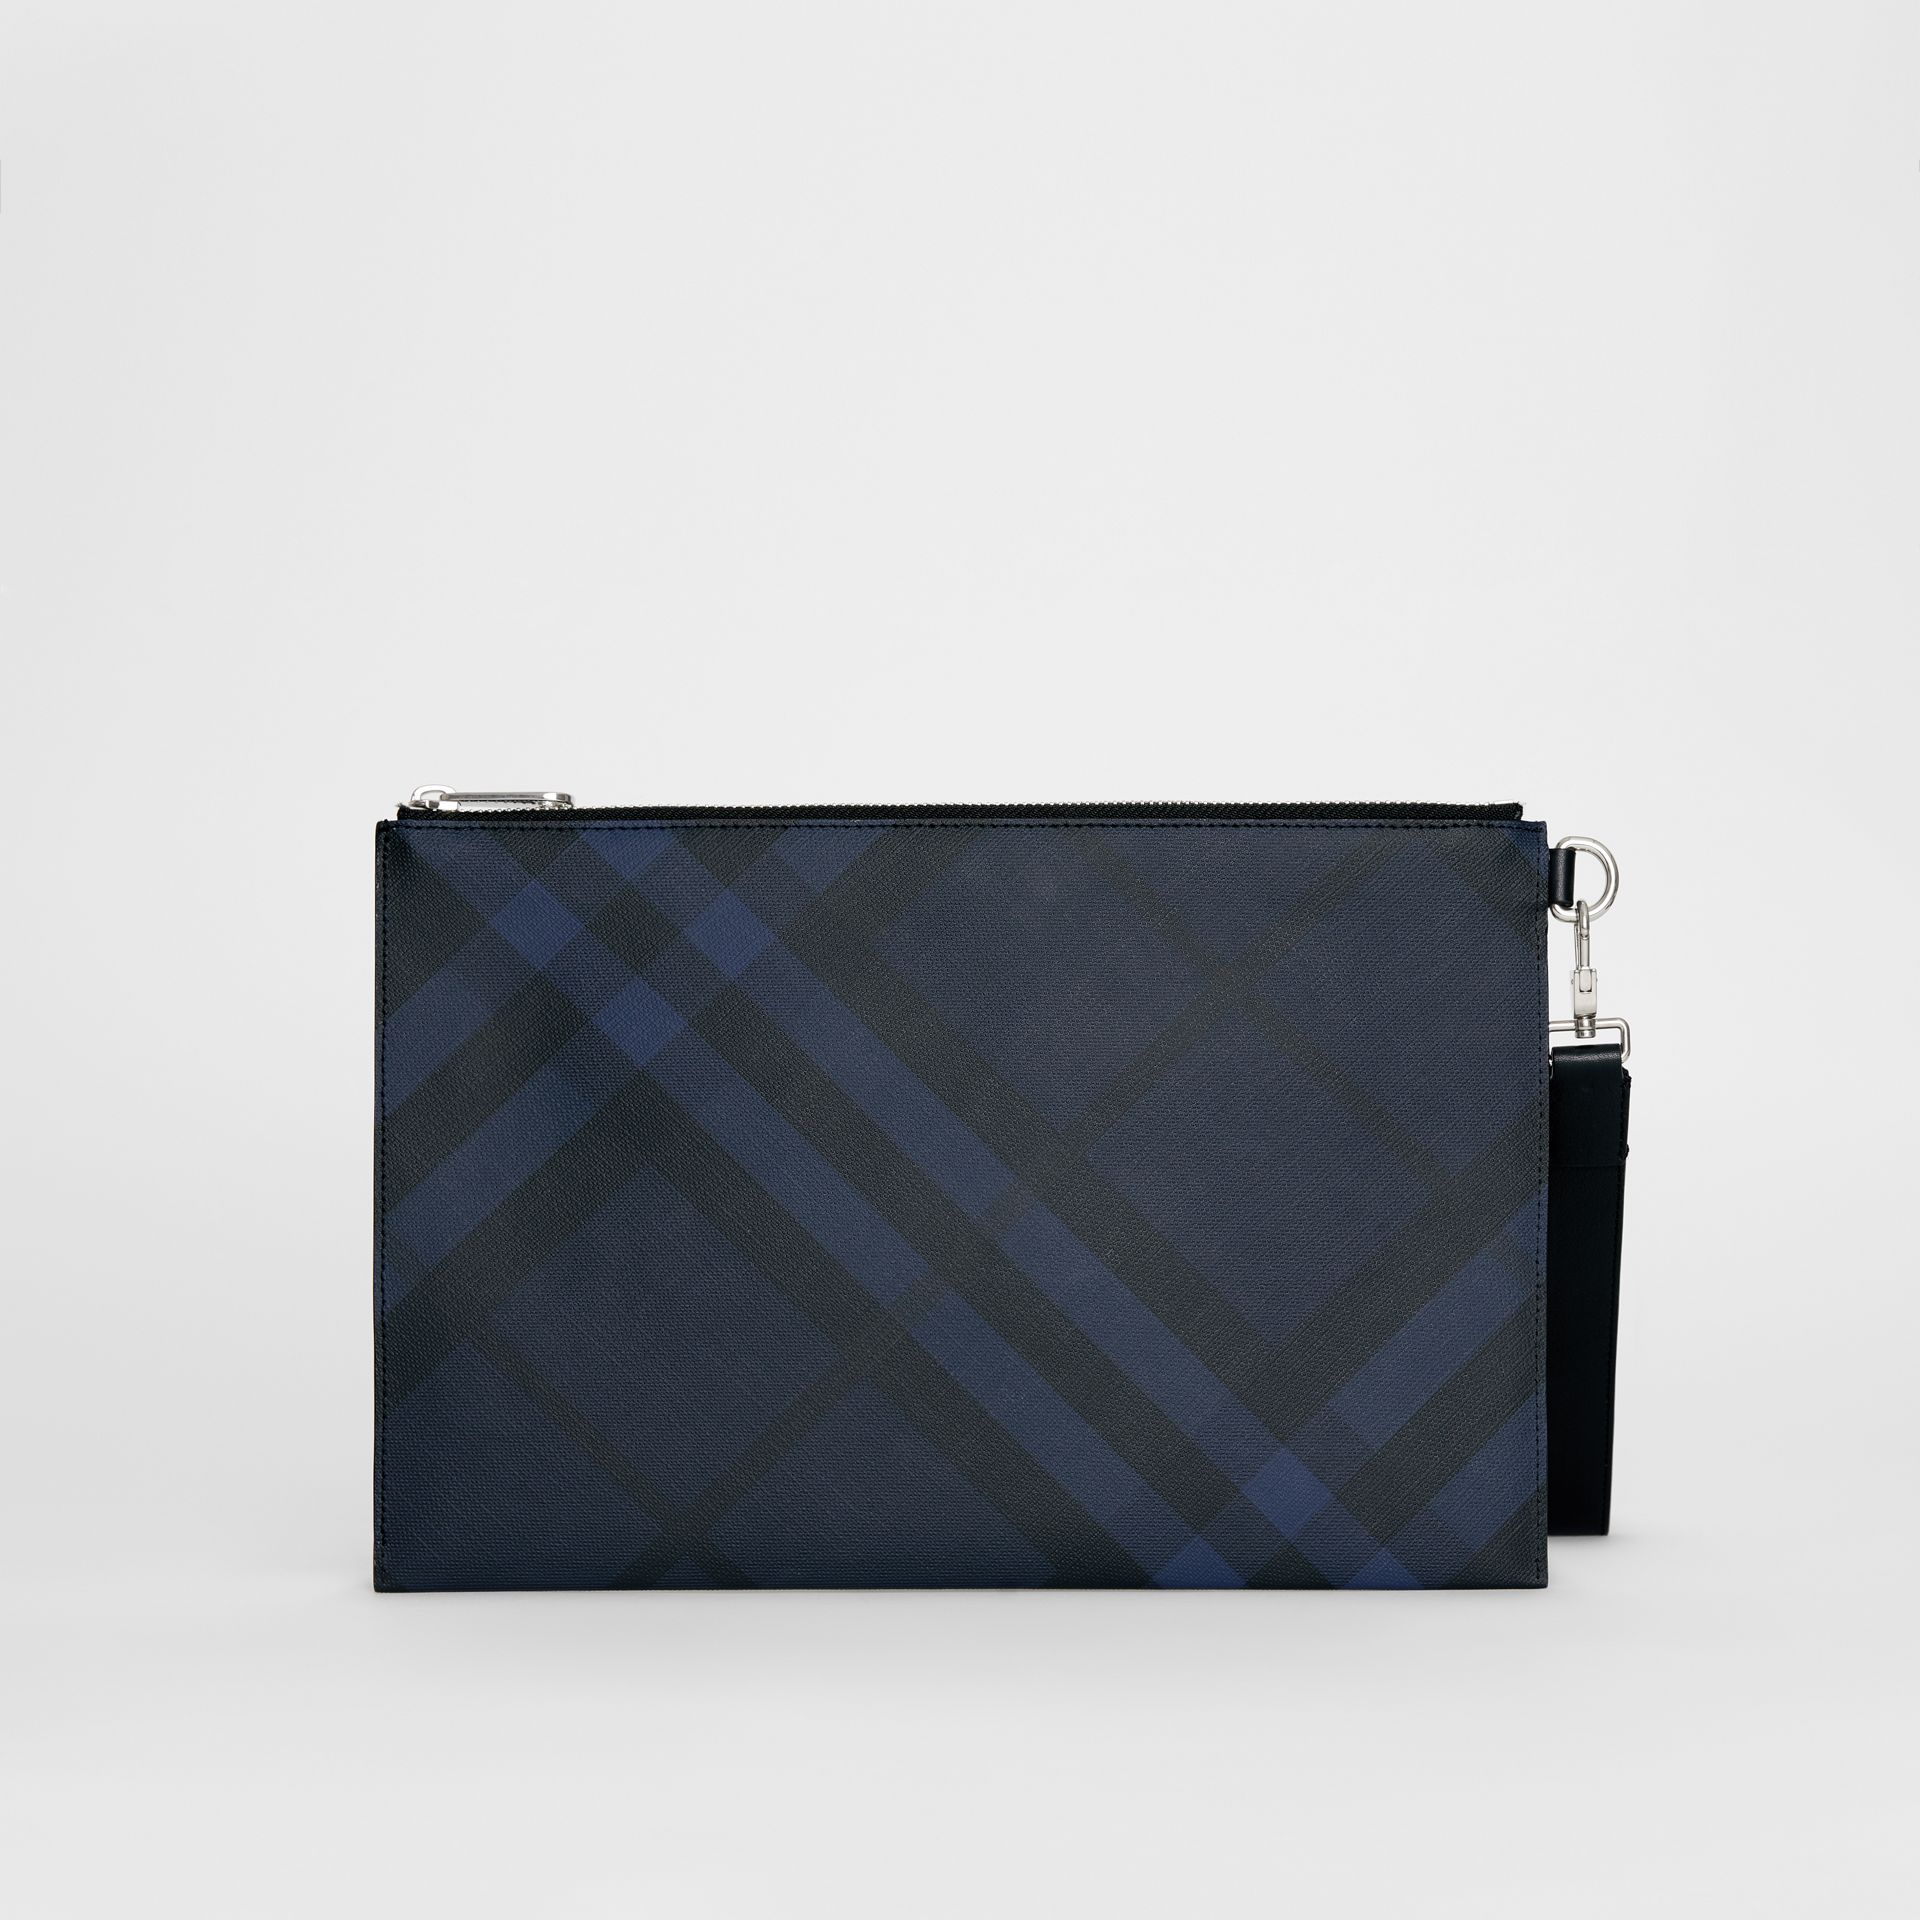 Pochette zippée à motif London check (Marine/noir) - Homme | Burberry - photo de la galerie 7